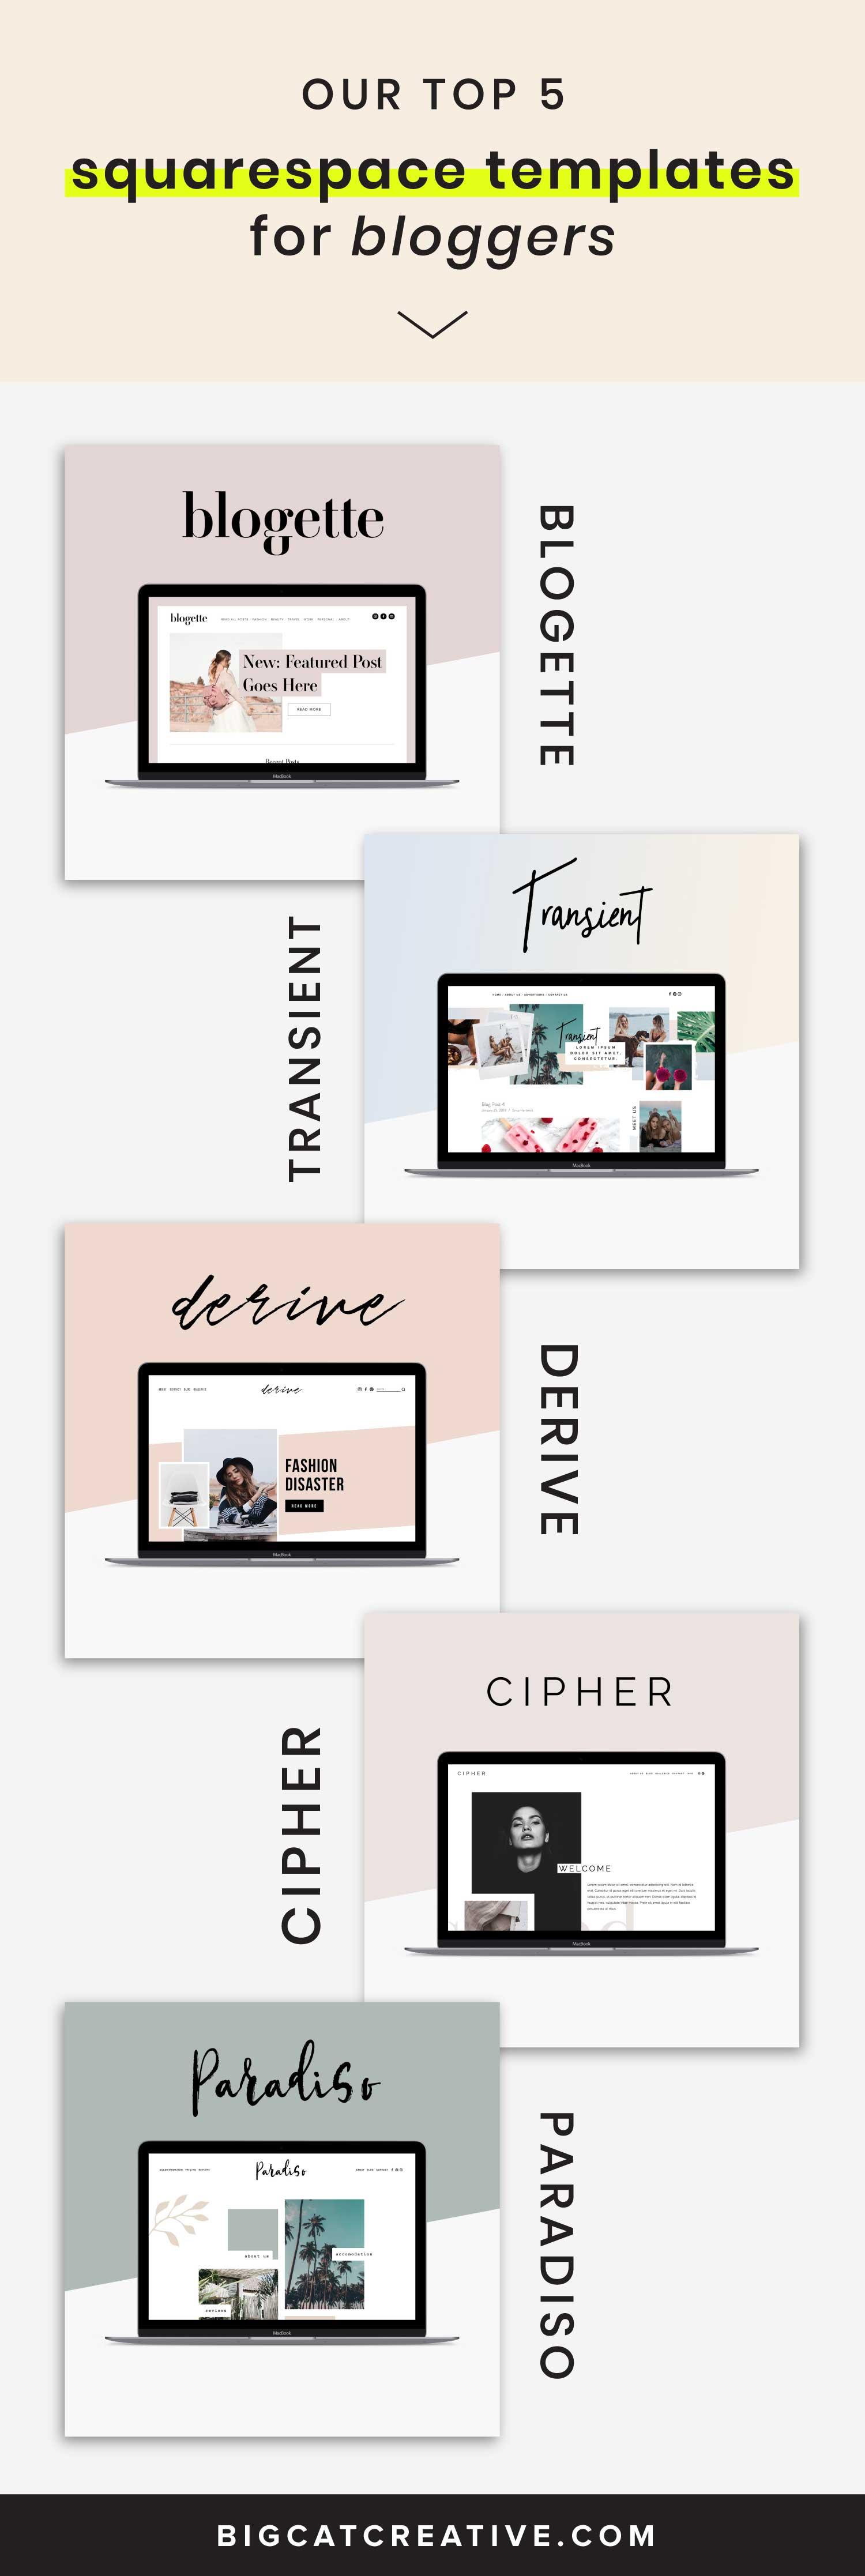 Our Best 5 Squarespace Templates for Bloggers - Big Cat Creative